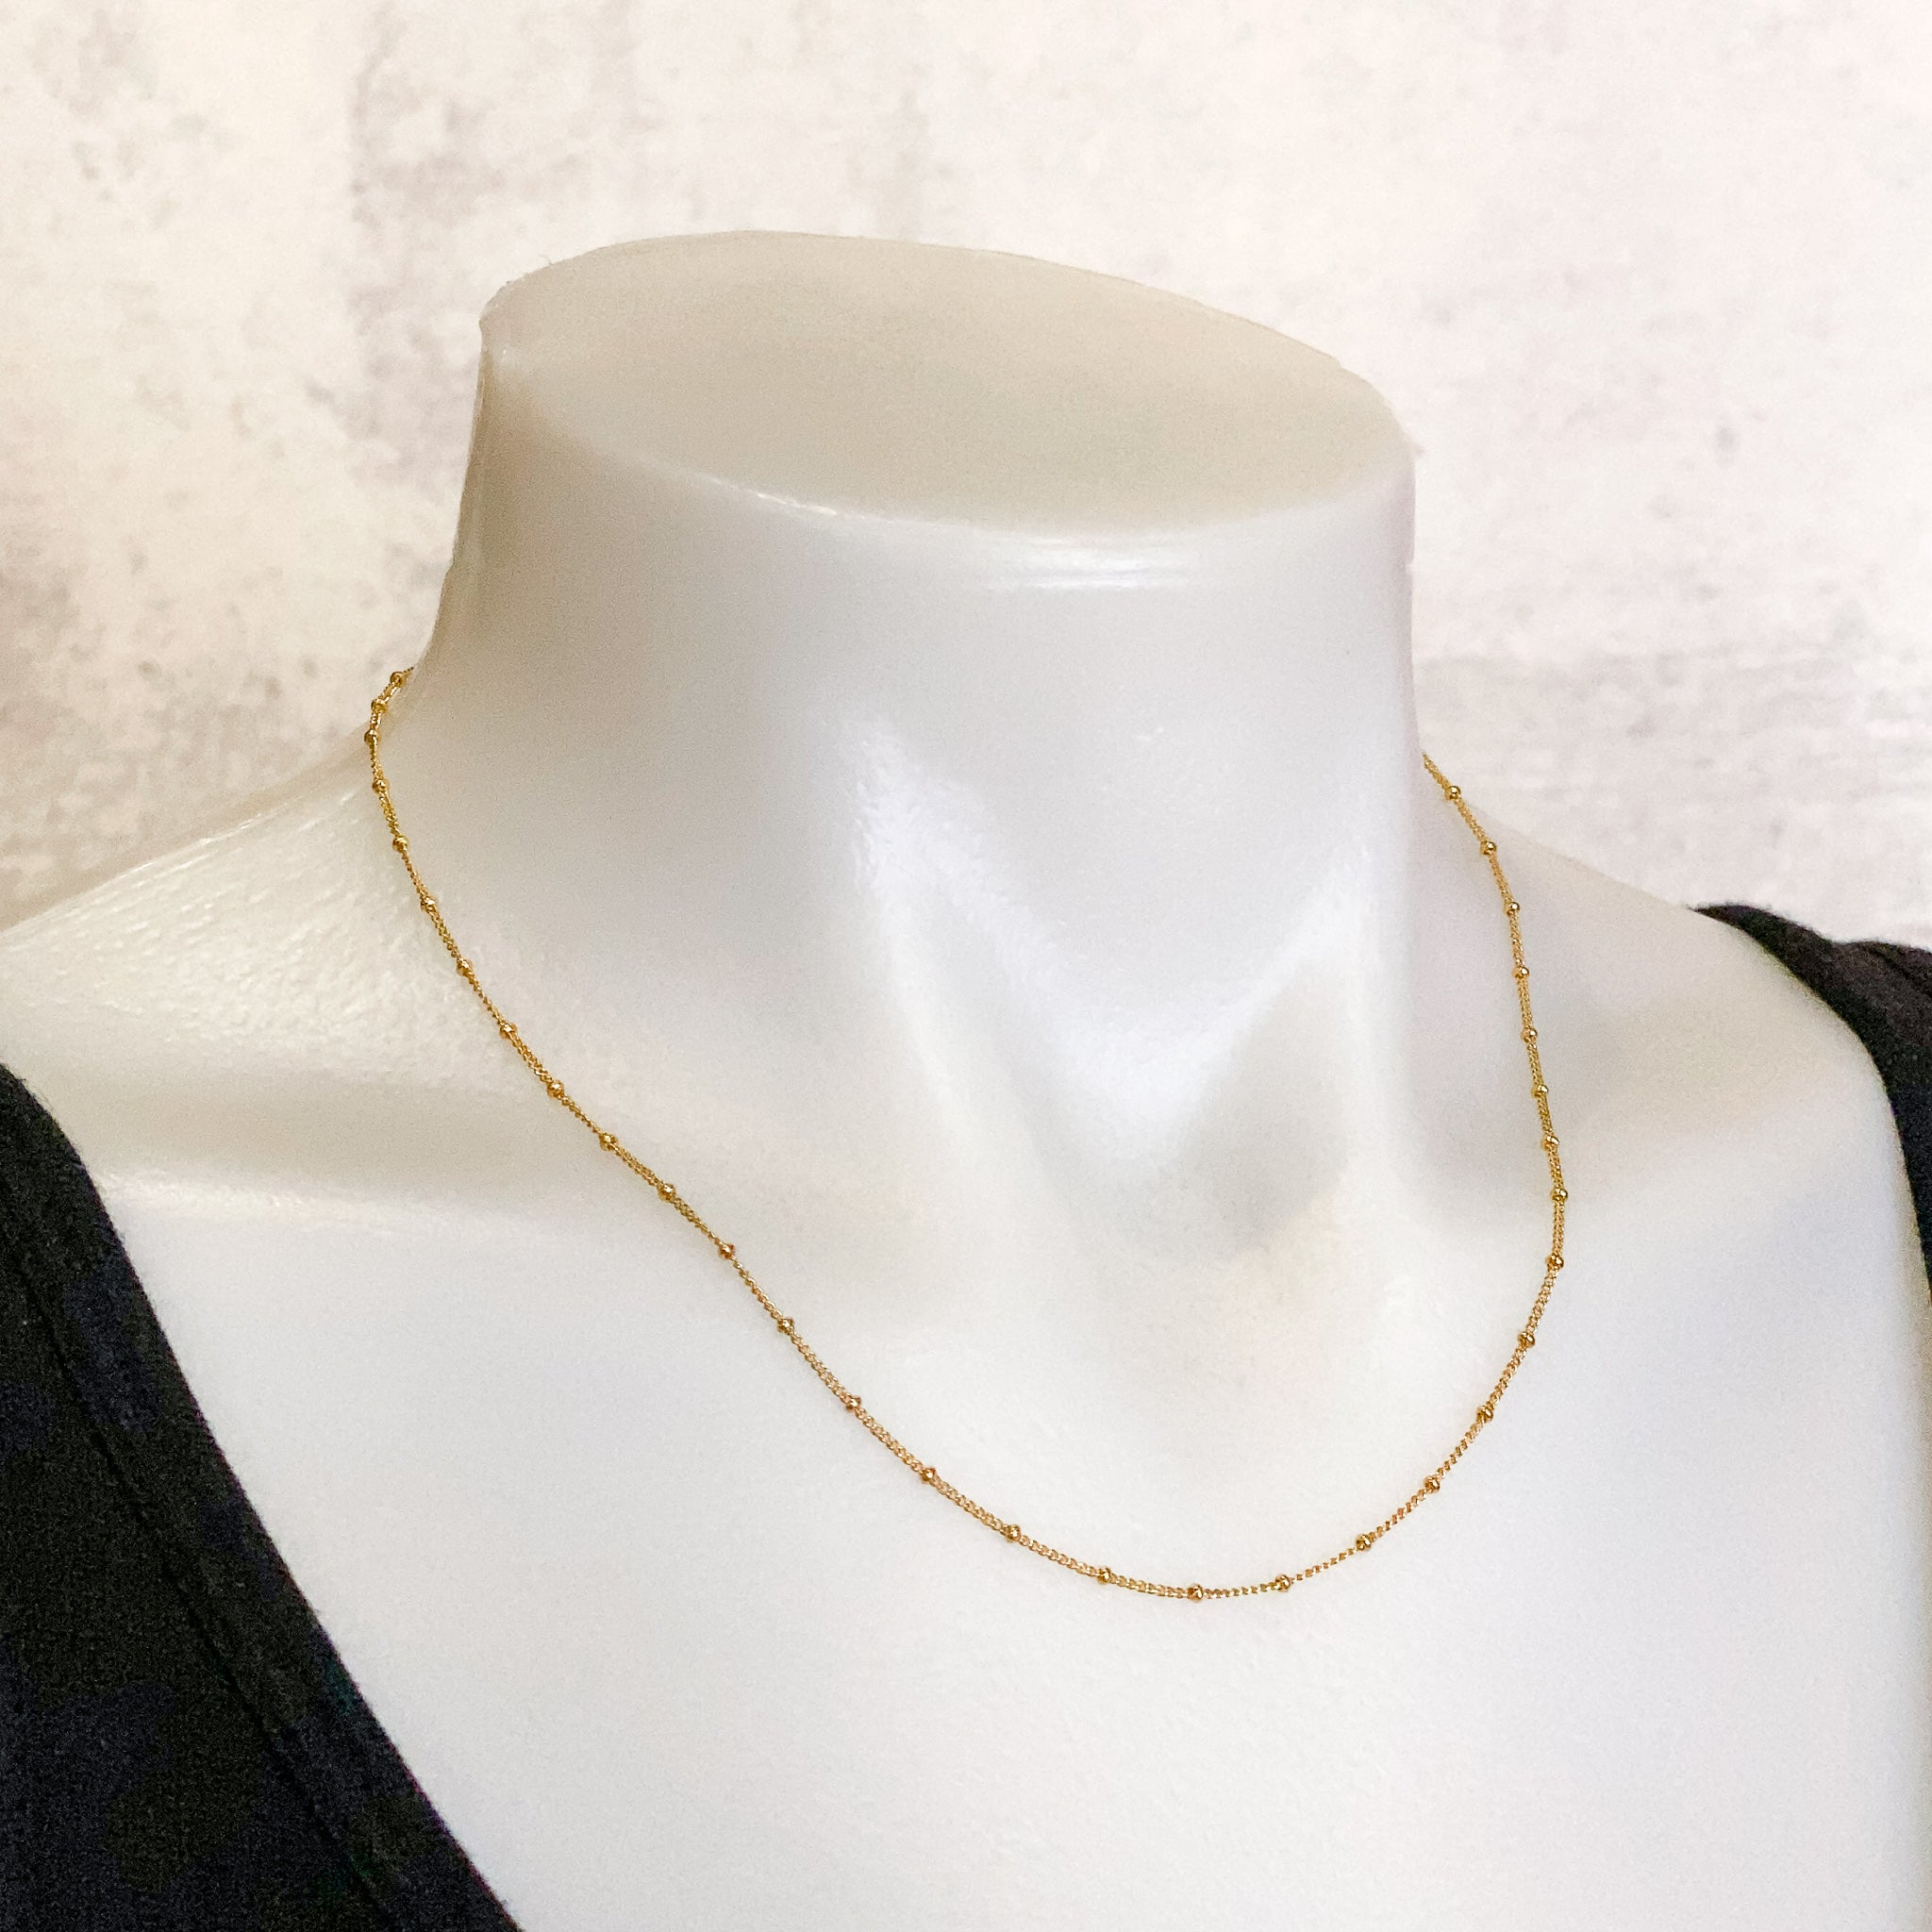 "18"" Satellite Finished Chain - Gold Filled: 1 piece"